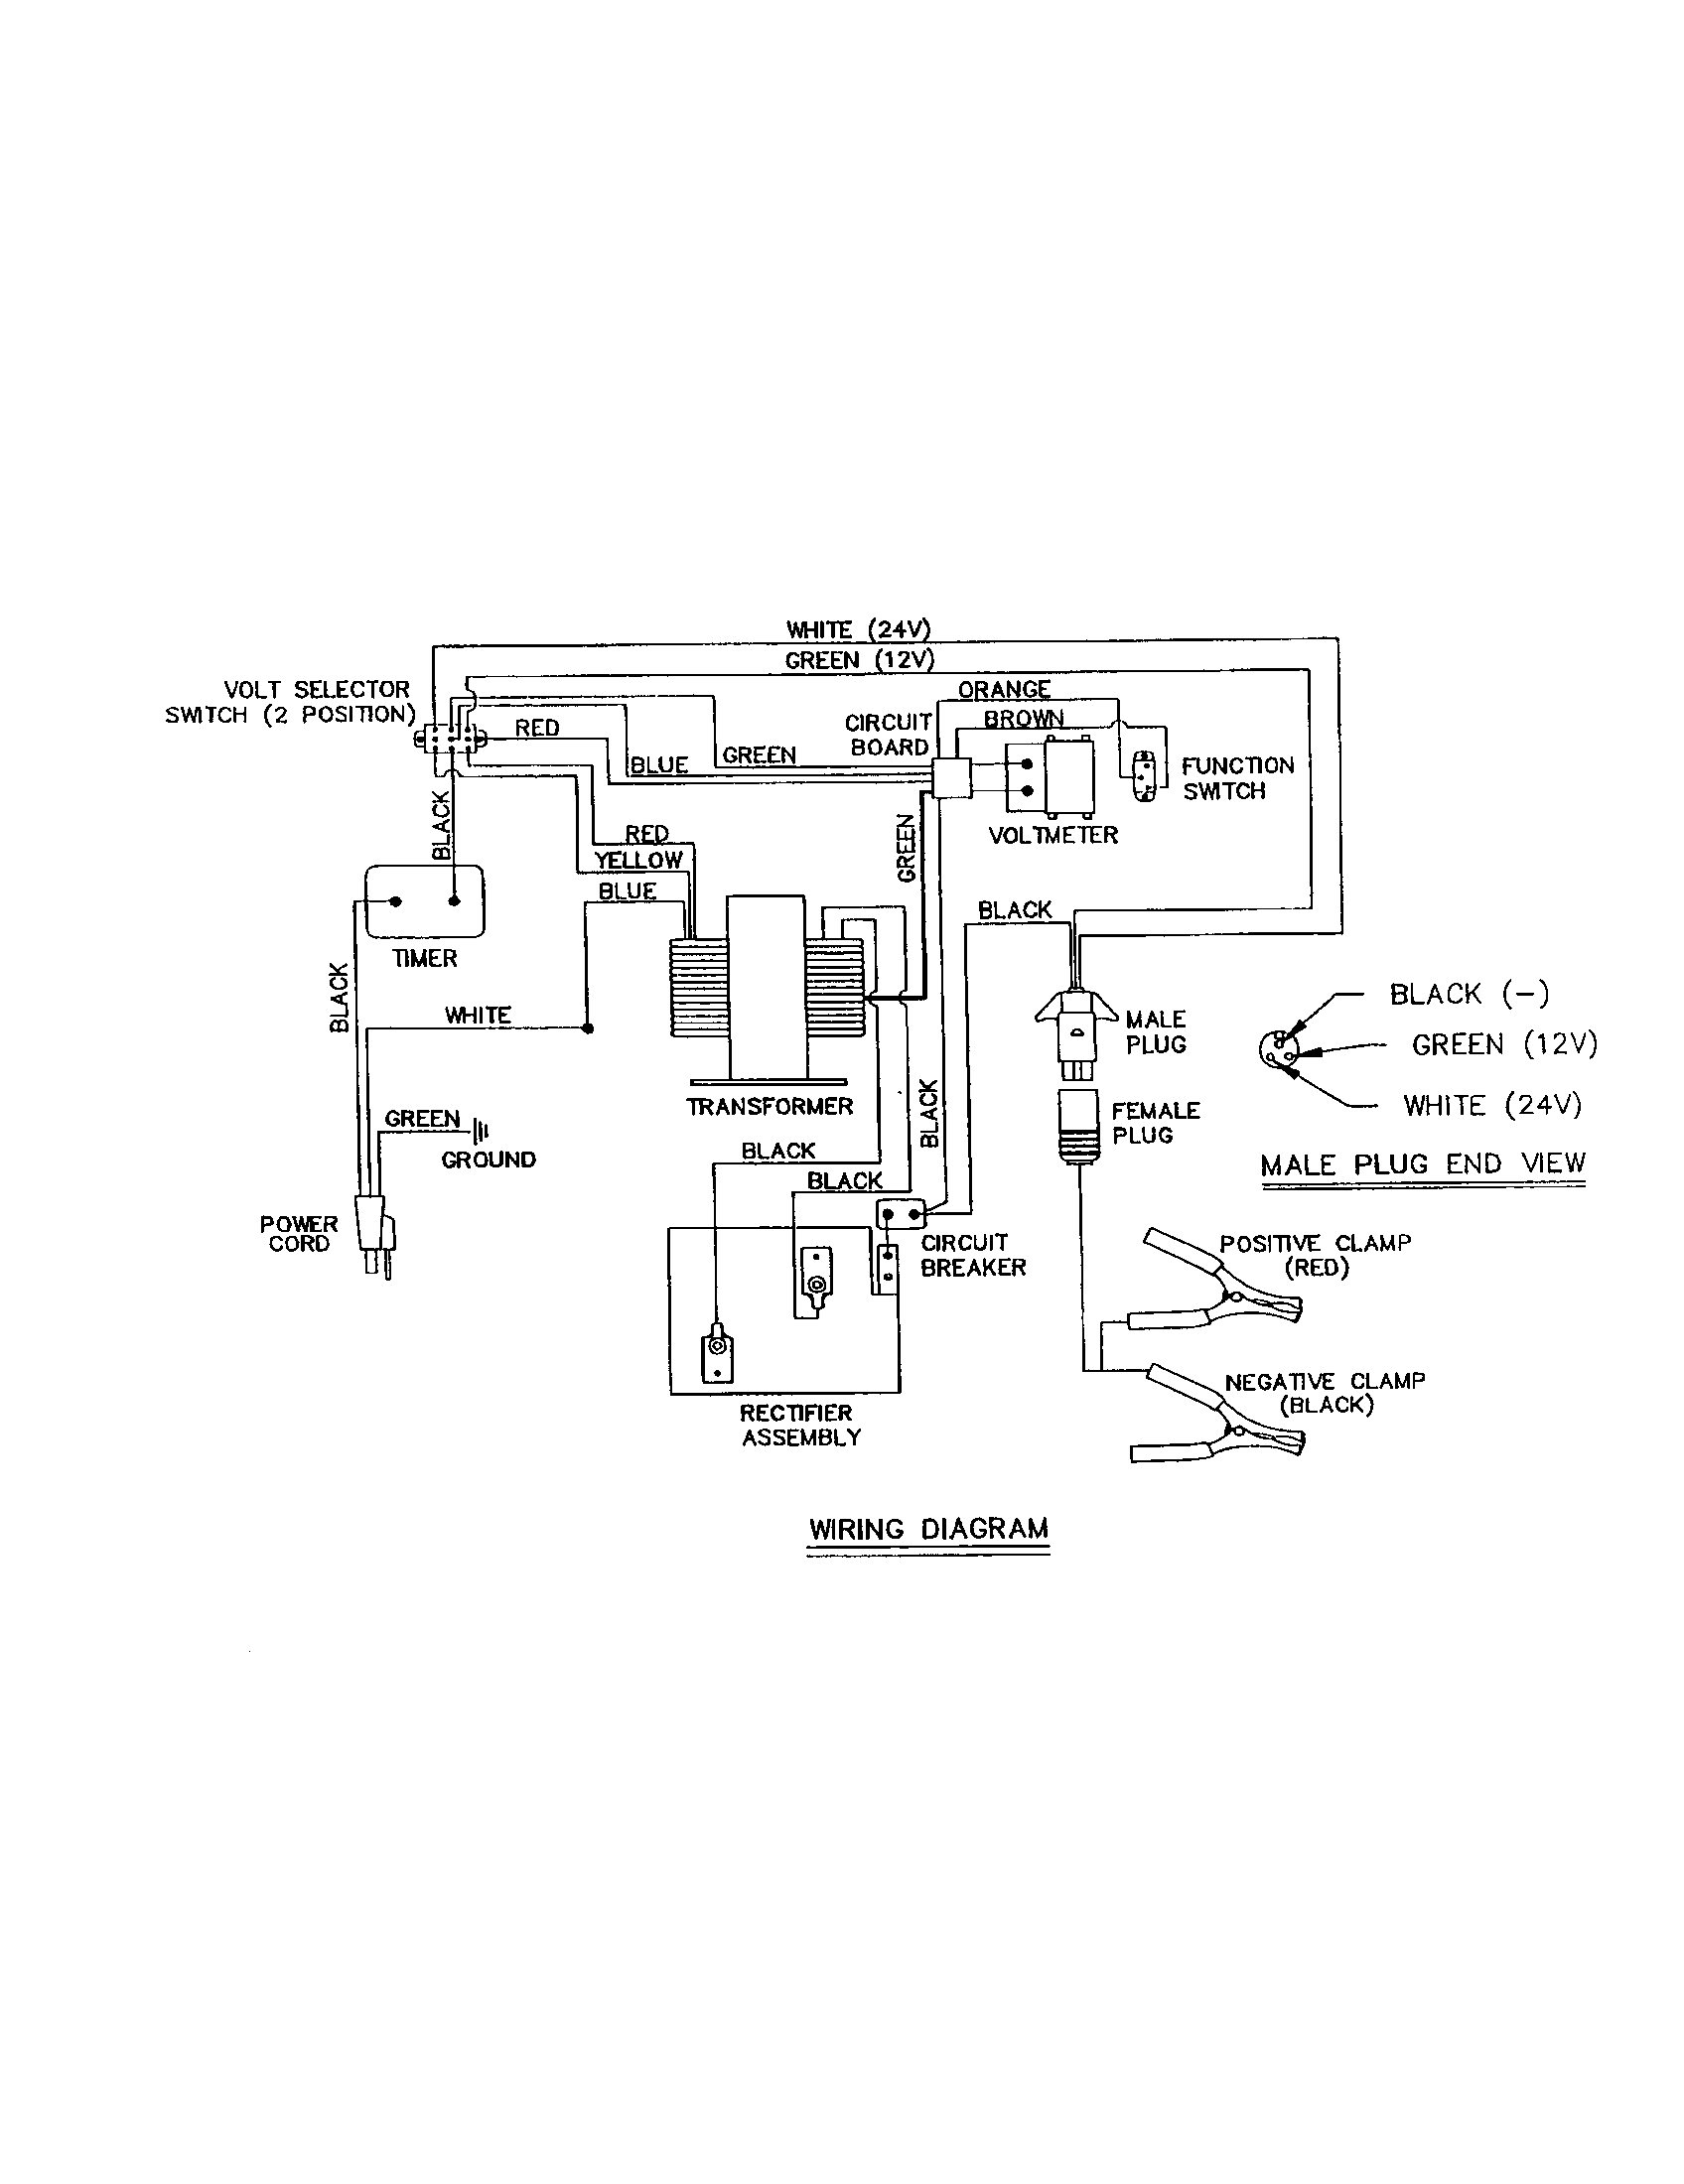 lund wiring diagram   19 wiring diagram images